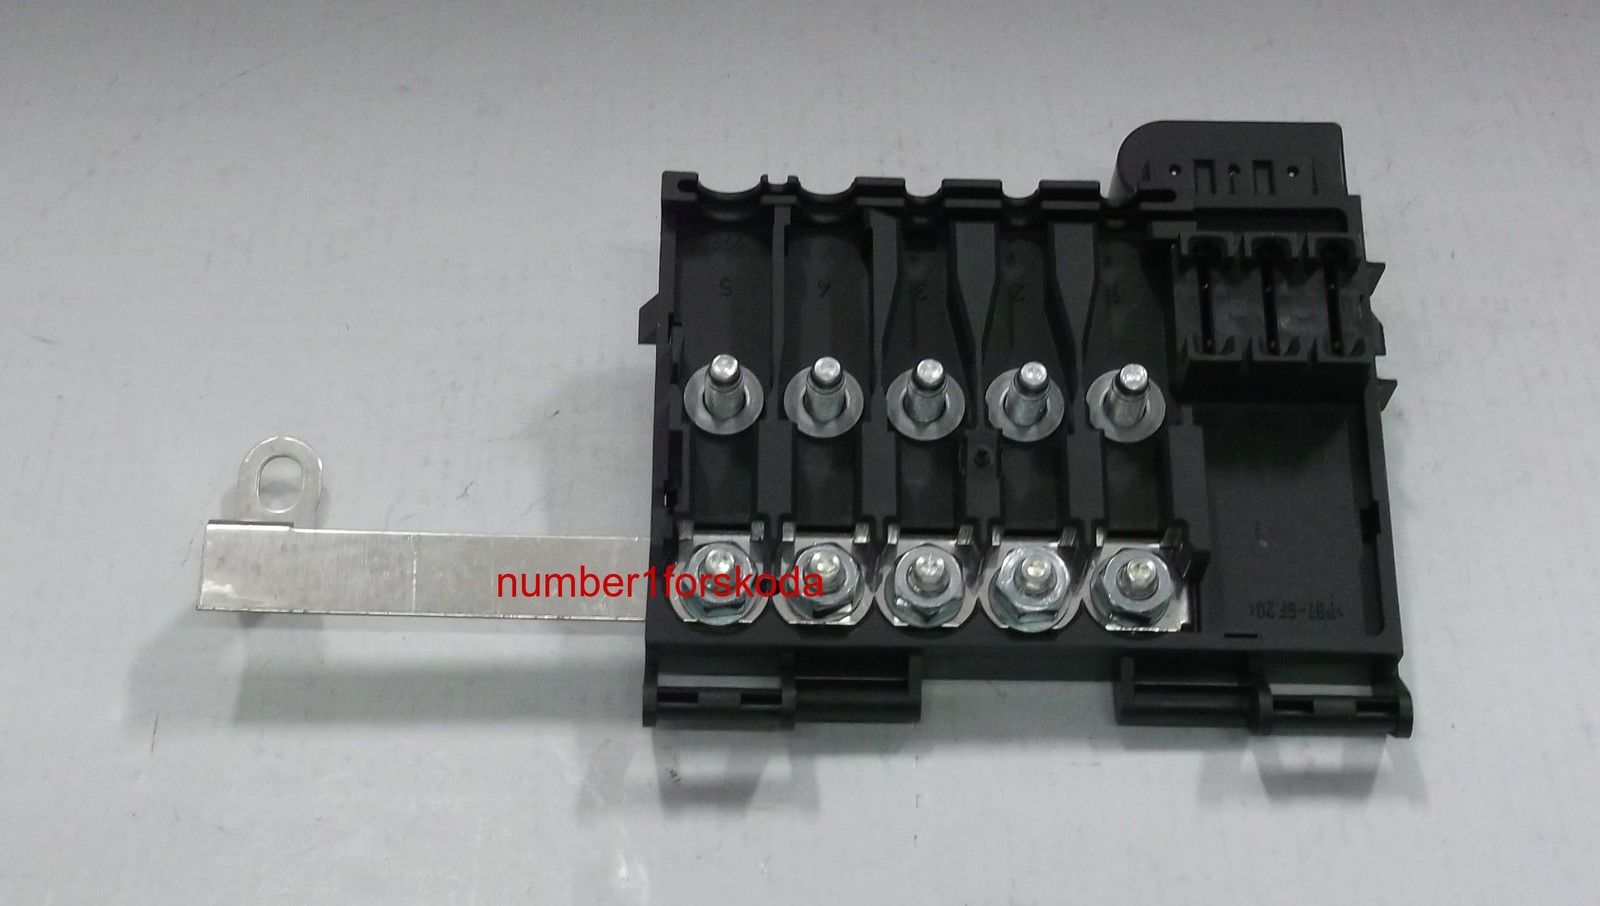 hight resolution of genuine skoda octavia mk1 1u battery fuse box 1j0937617c octavia mk1 fuse box location skoda fabia mk1 fuse box location